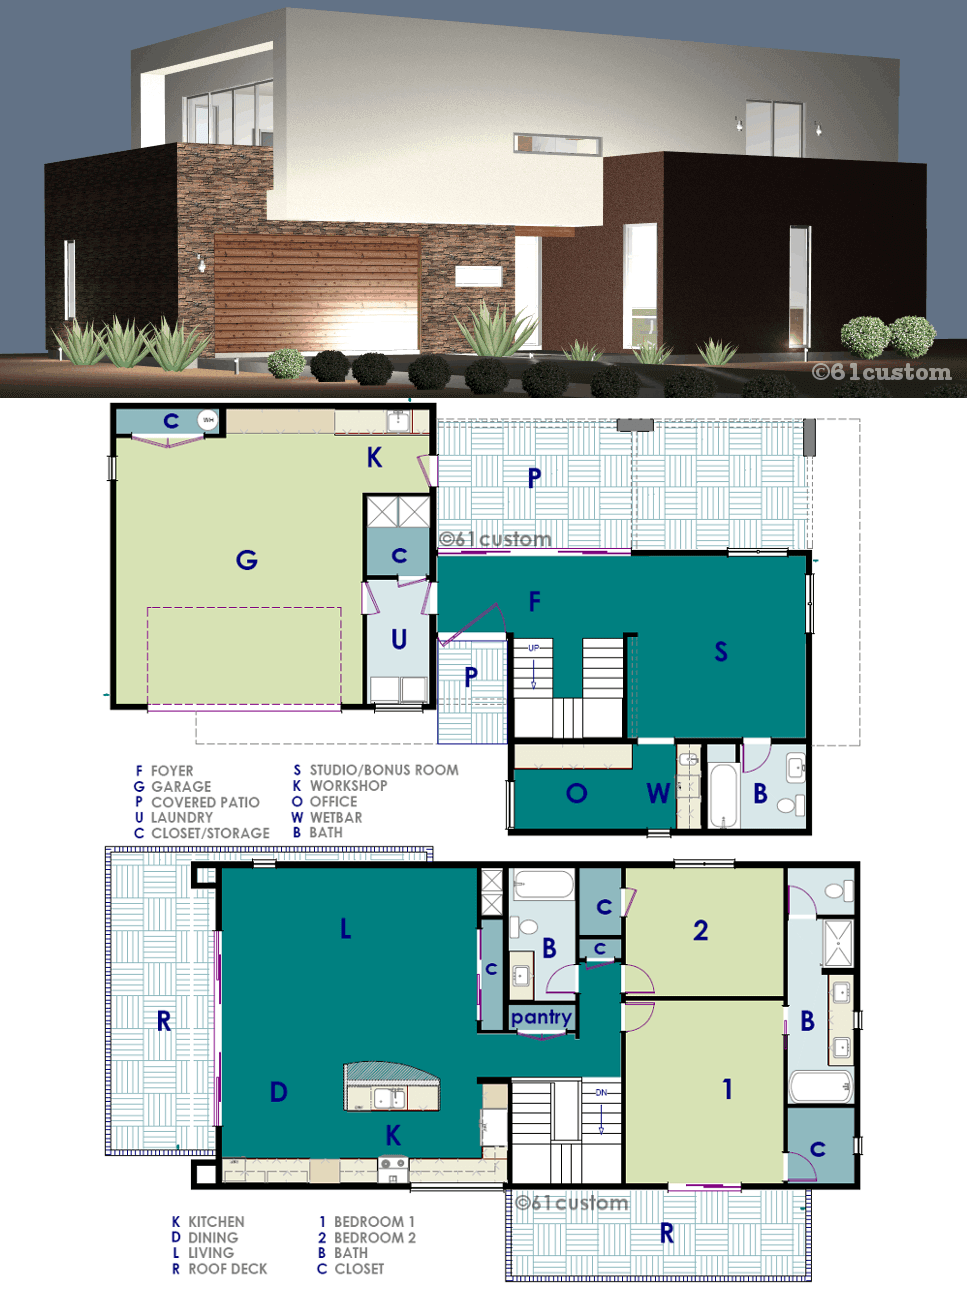 Ultra Modern Live-Work House Plan 61custom ontemporary ... - ^